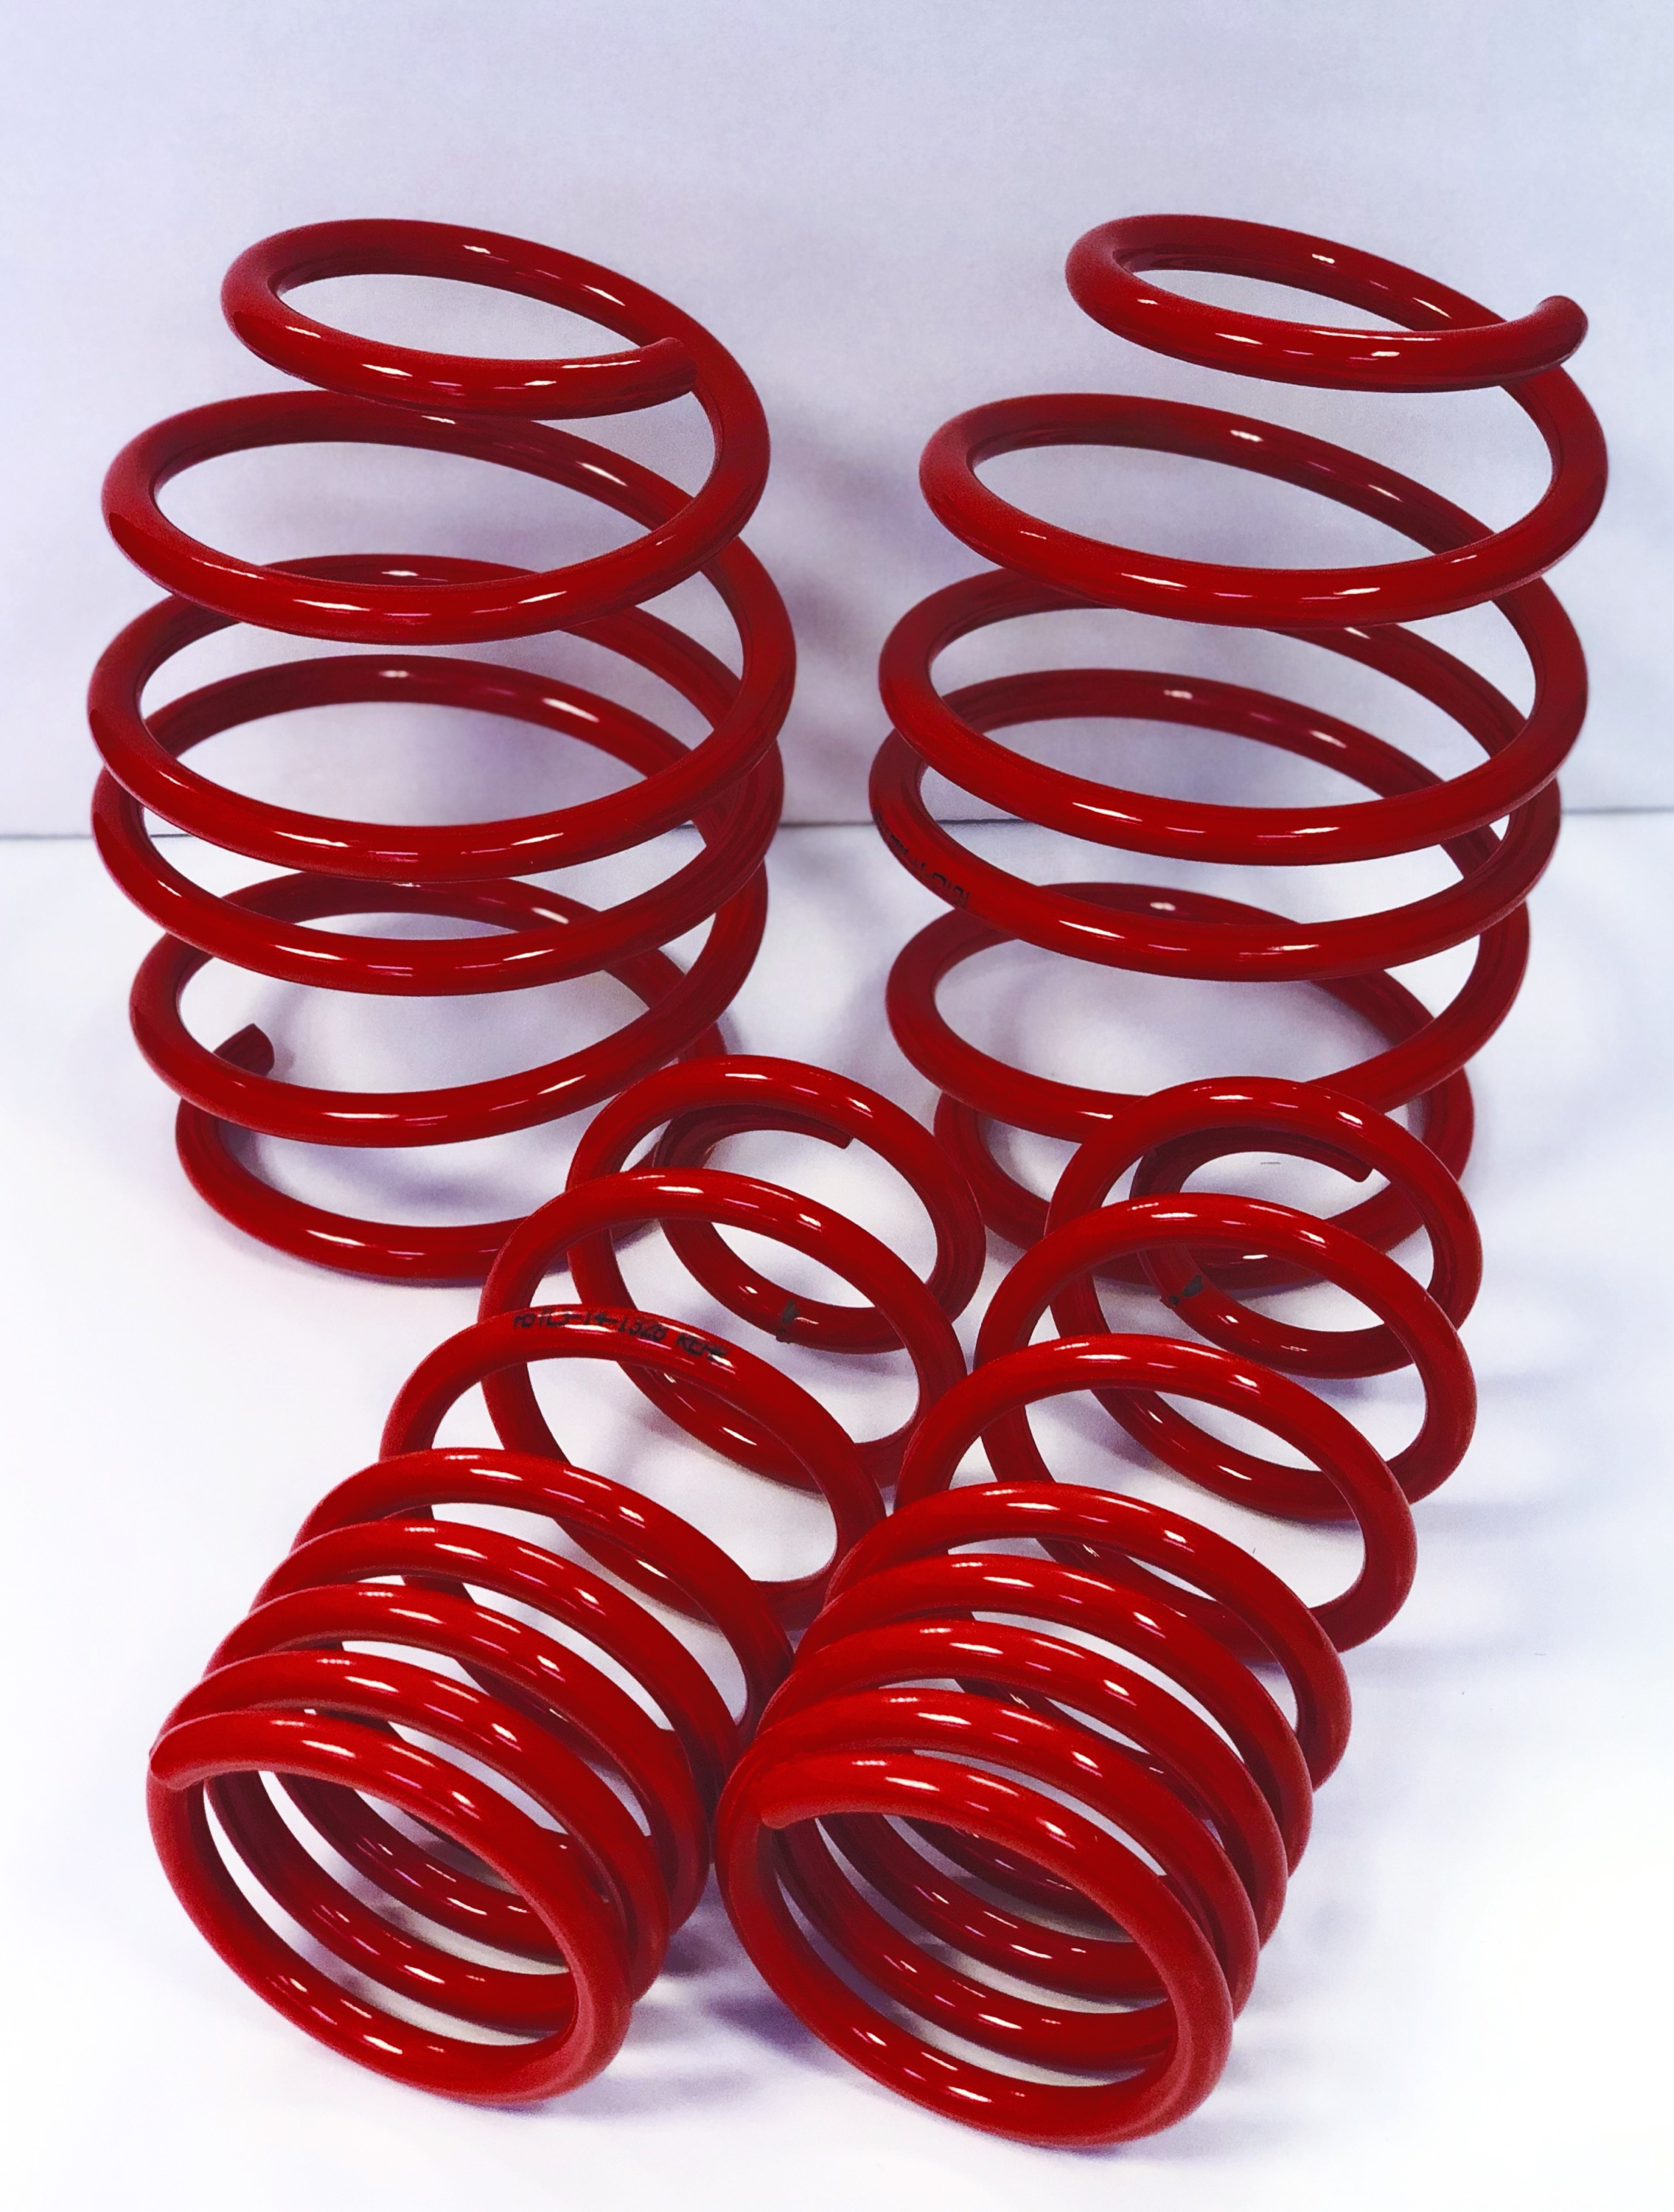 Volkswagen POLO AST Suspension Lowering Springs 50MM